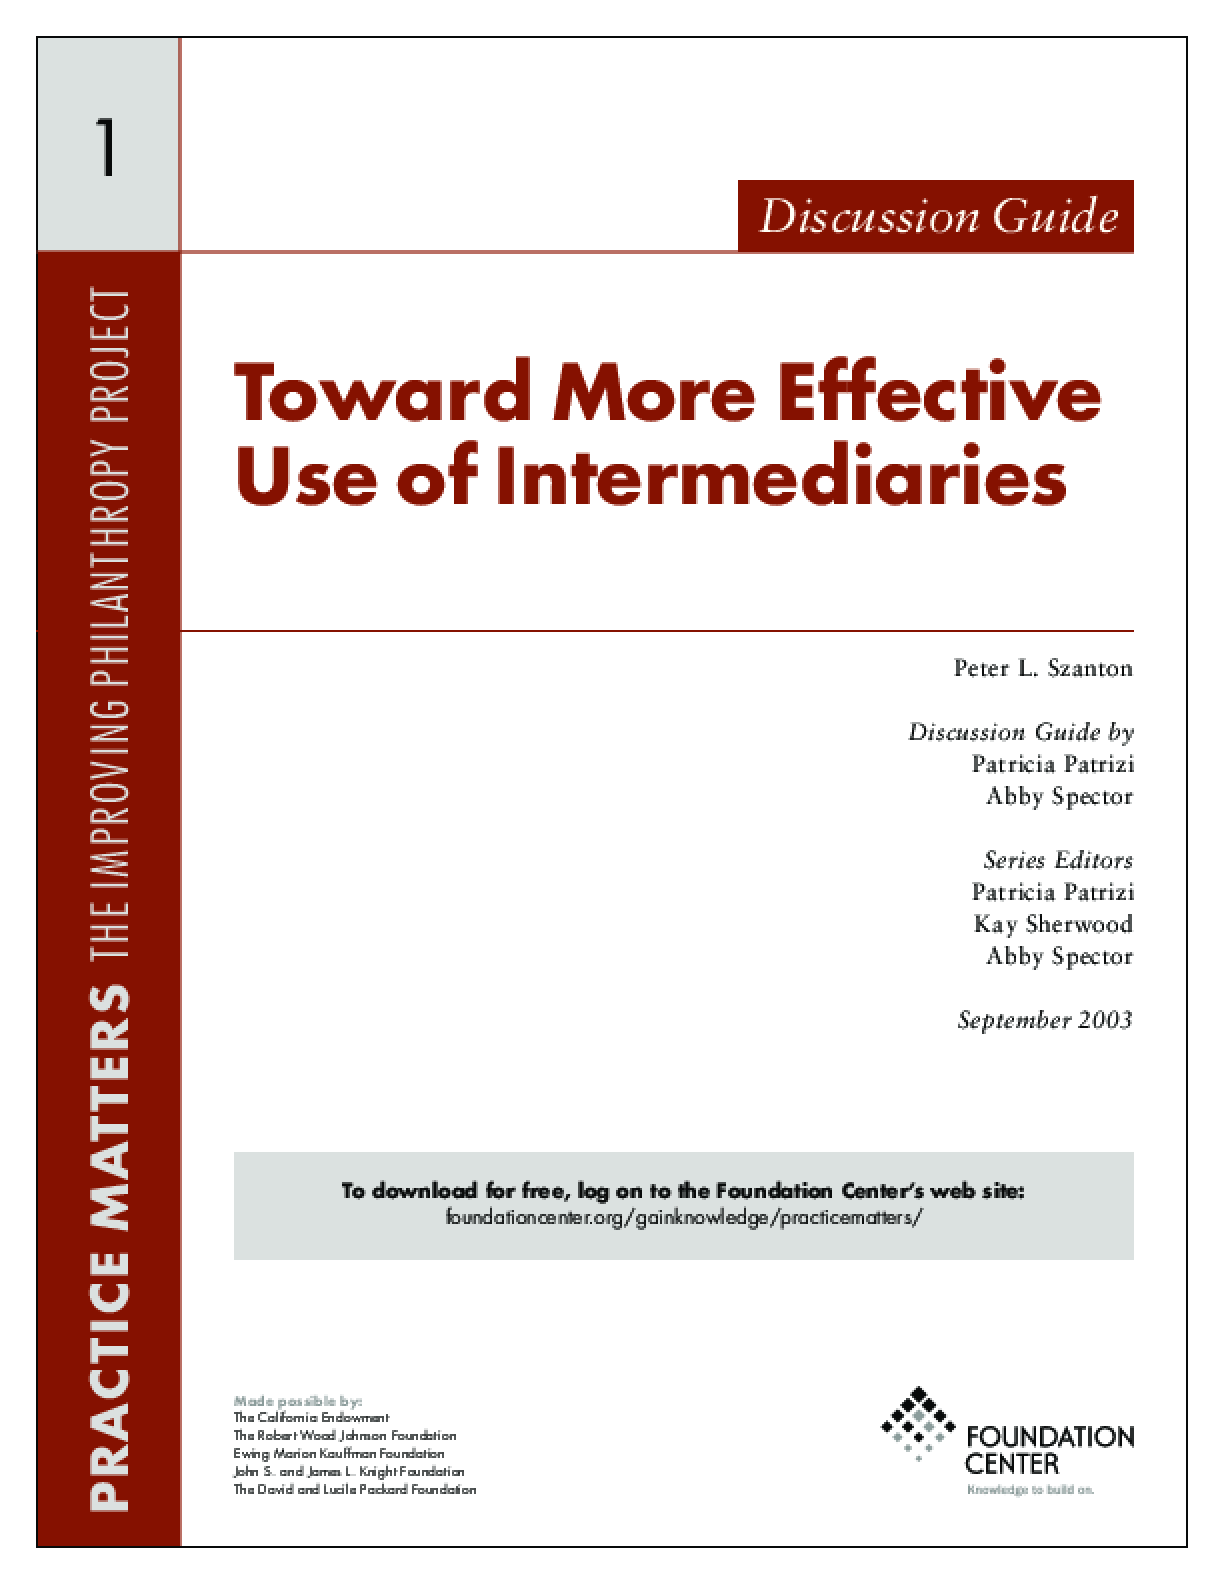 Toward More Effective Use of Intermediaries: Discussion Guide